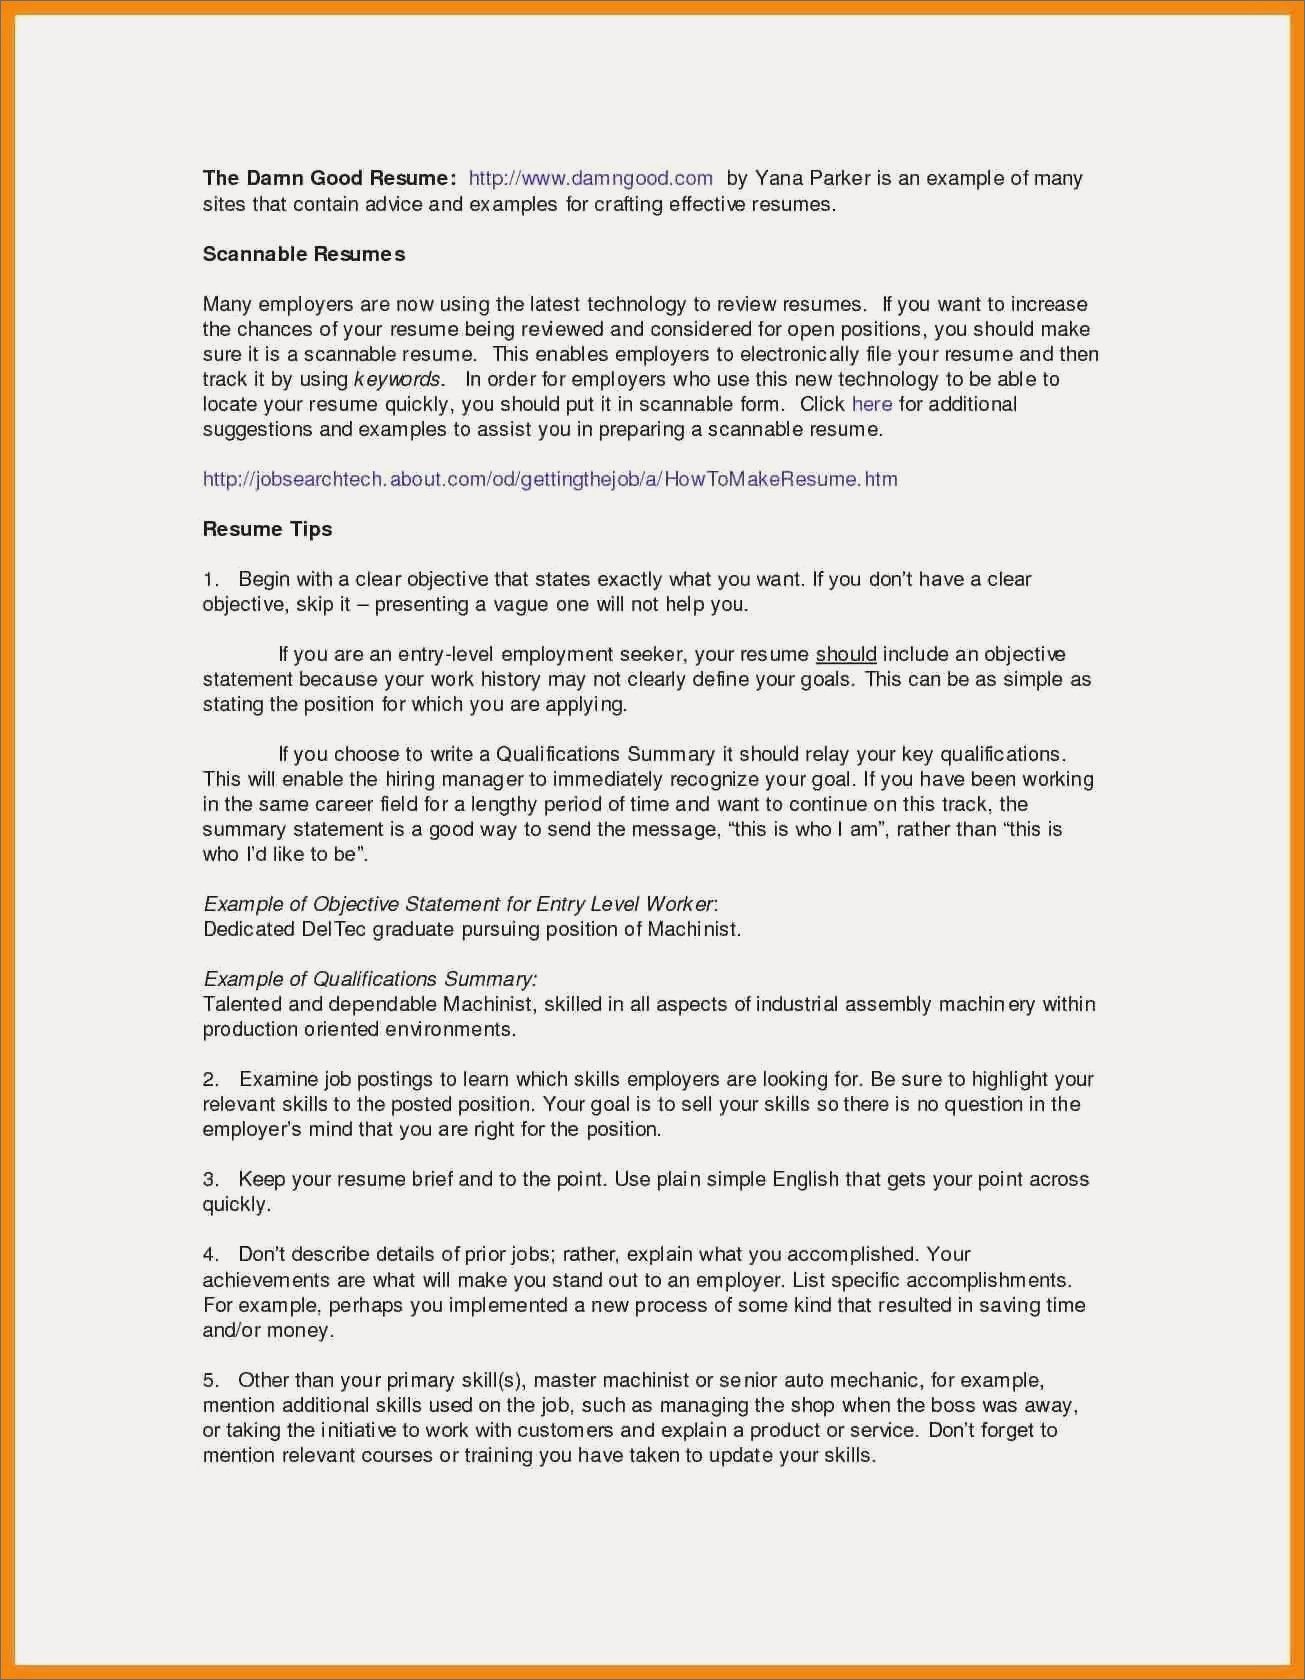 Sample Resume for Project Manager Position - Sample Resumes for Project Managers Inspirationa Sample Project